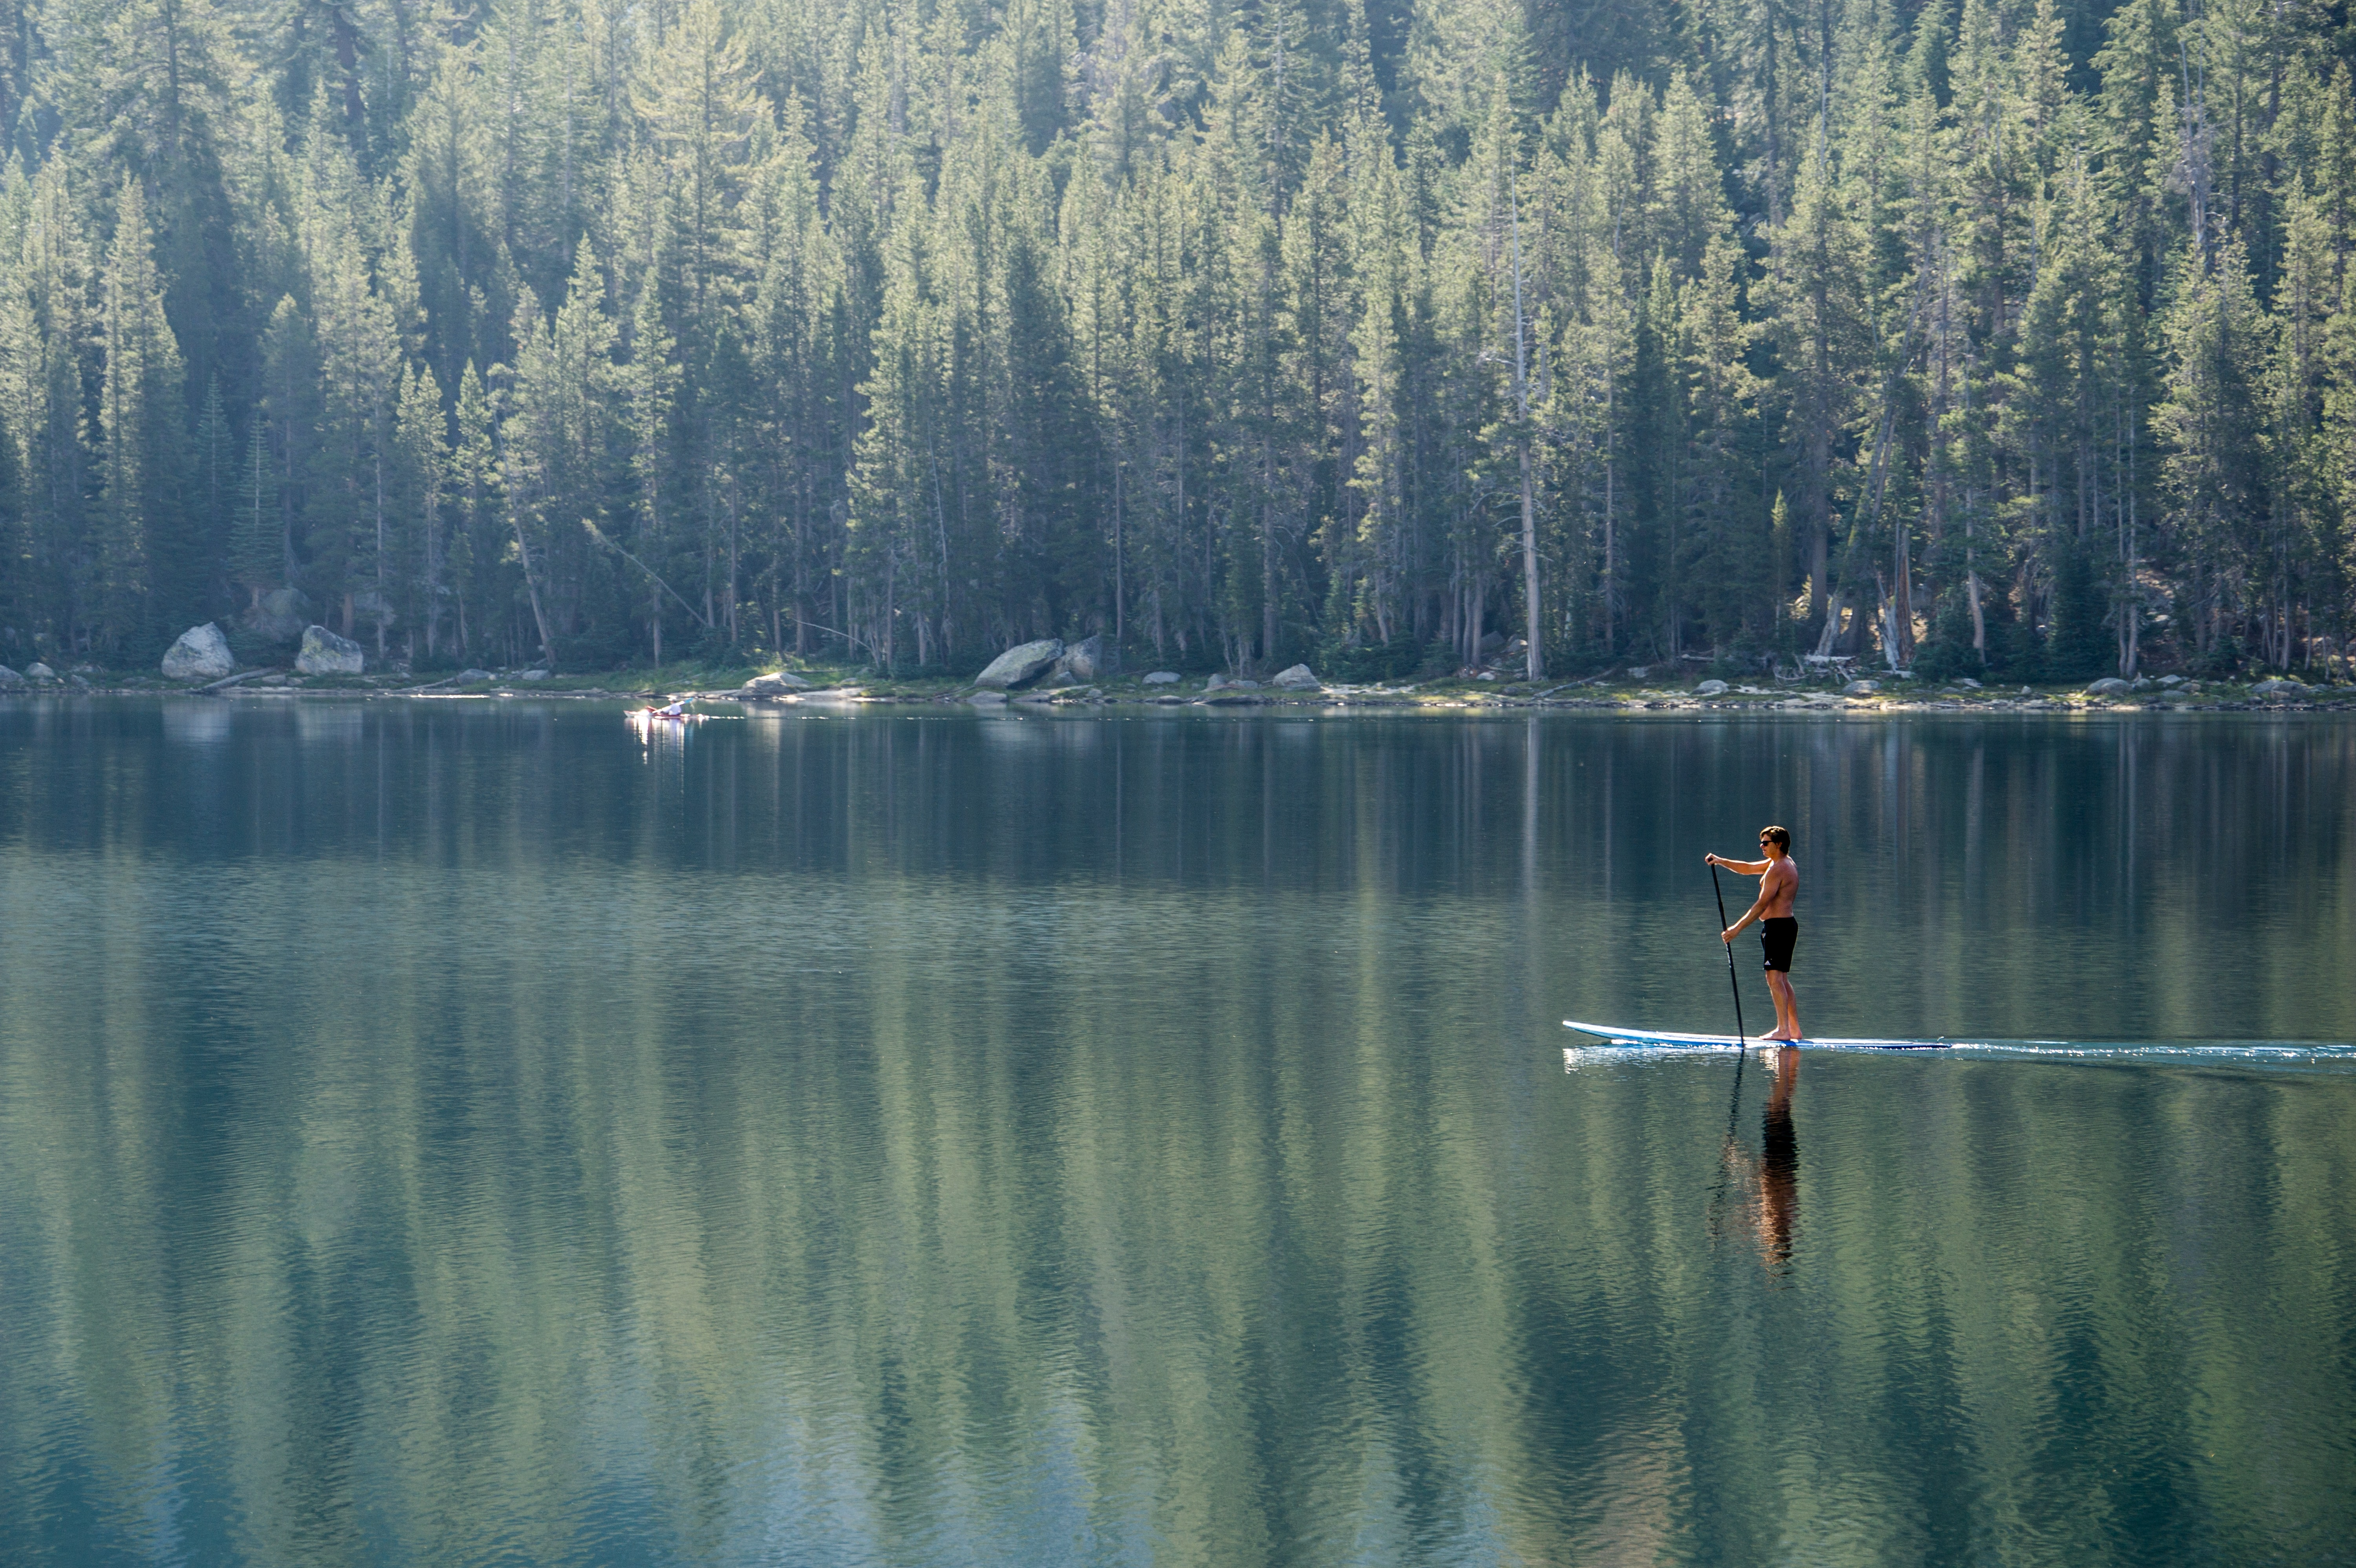 man standing on blue paddle board on body of water during daytime